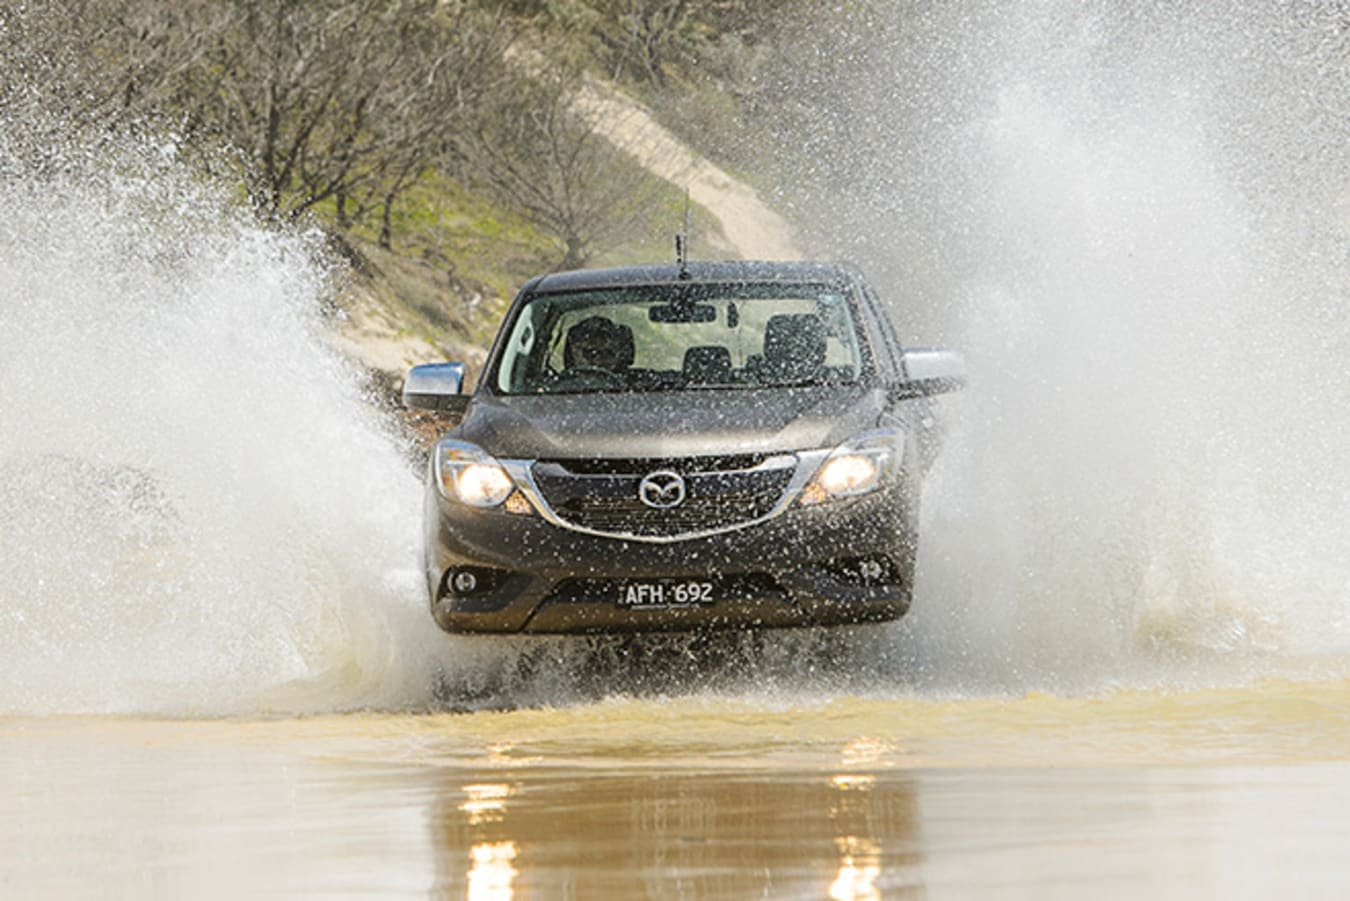 Mazda BT-50 at Fraser Island driving through water and sand